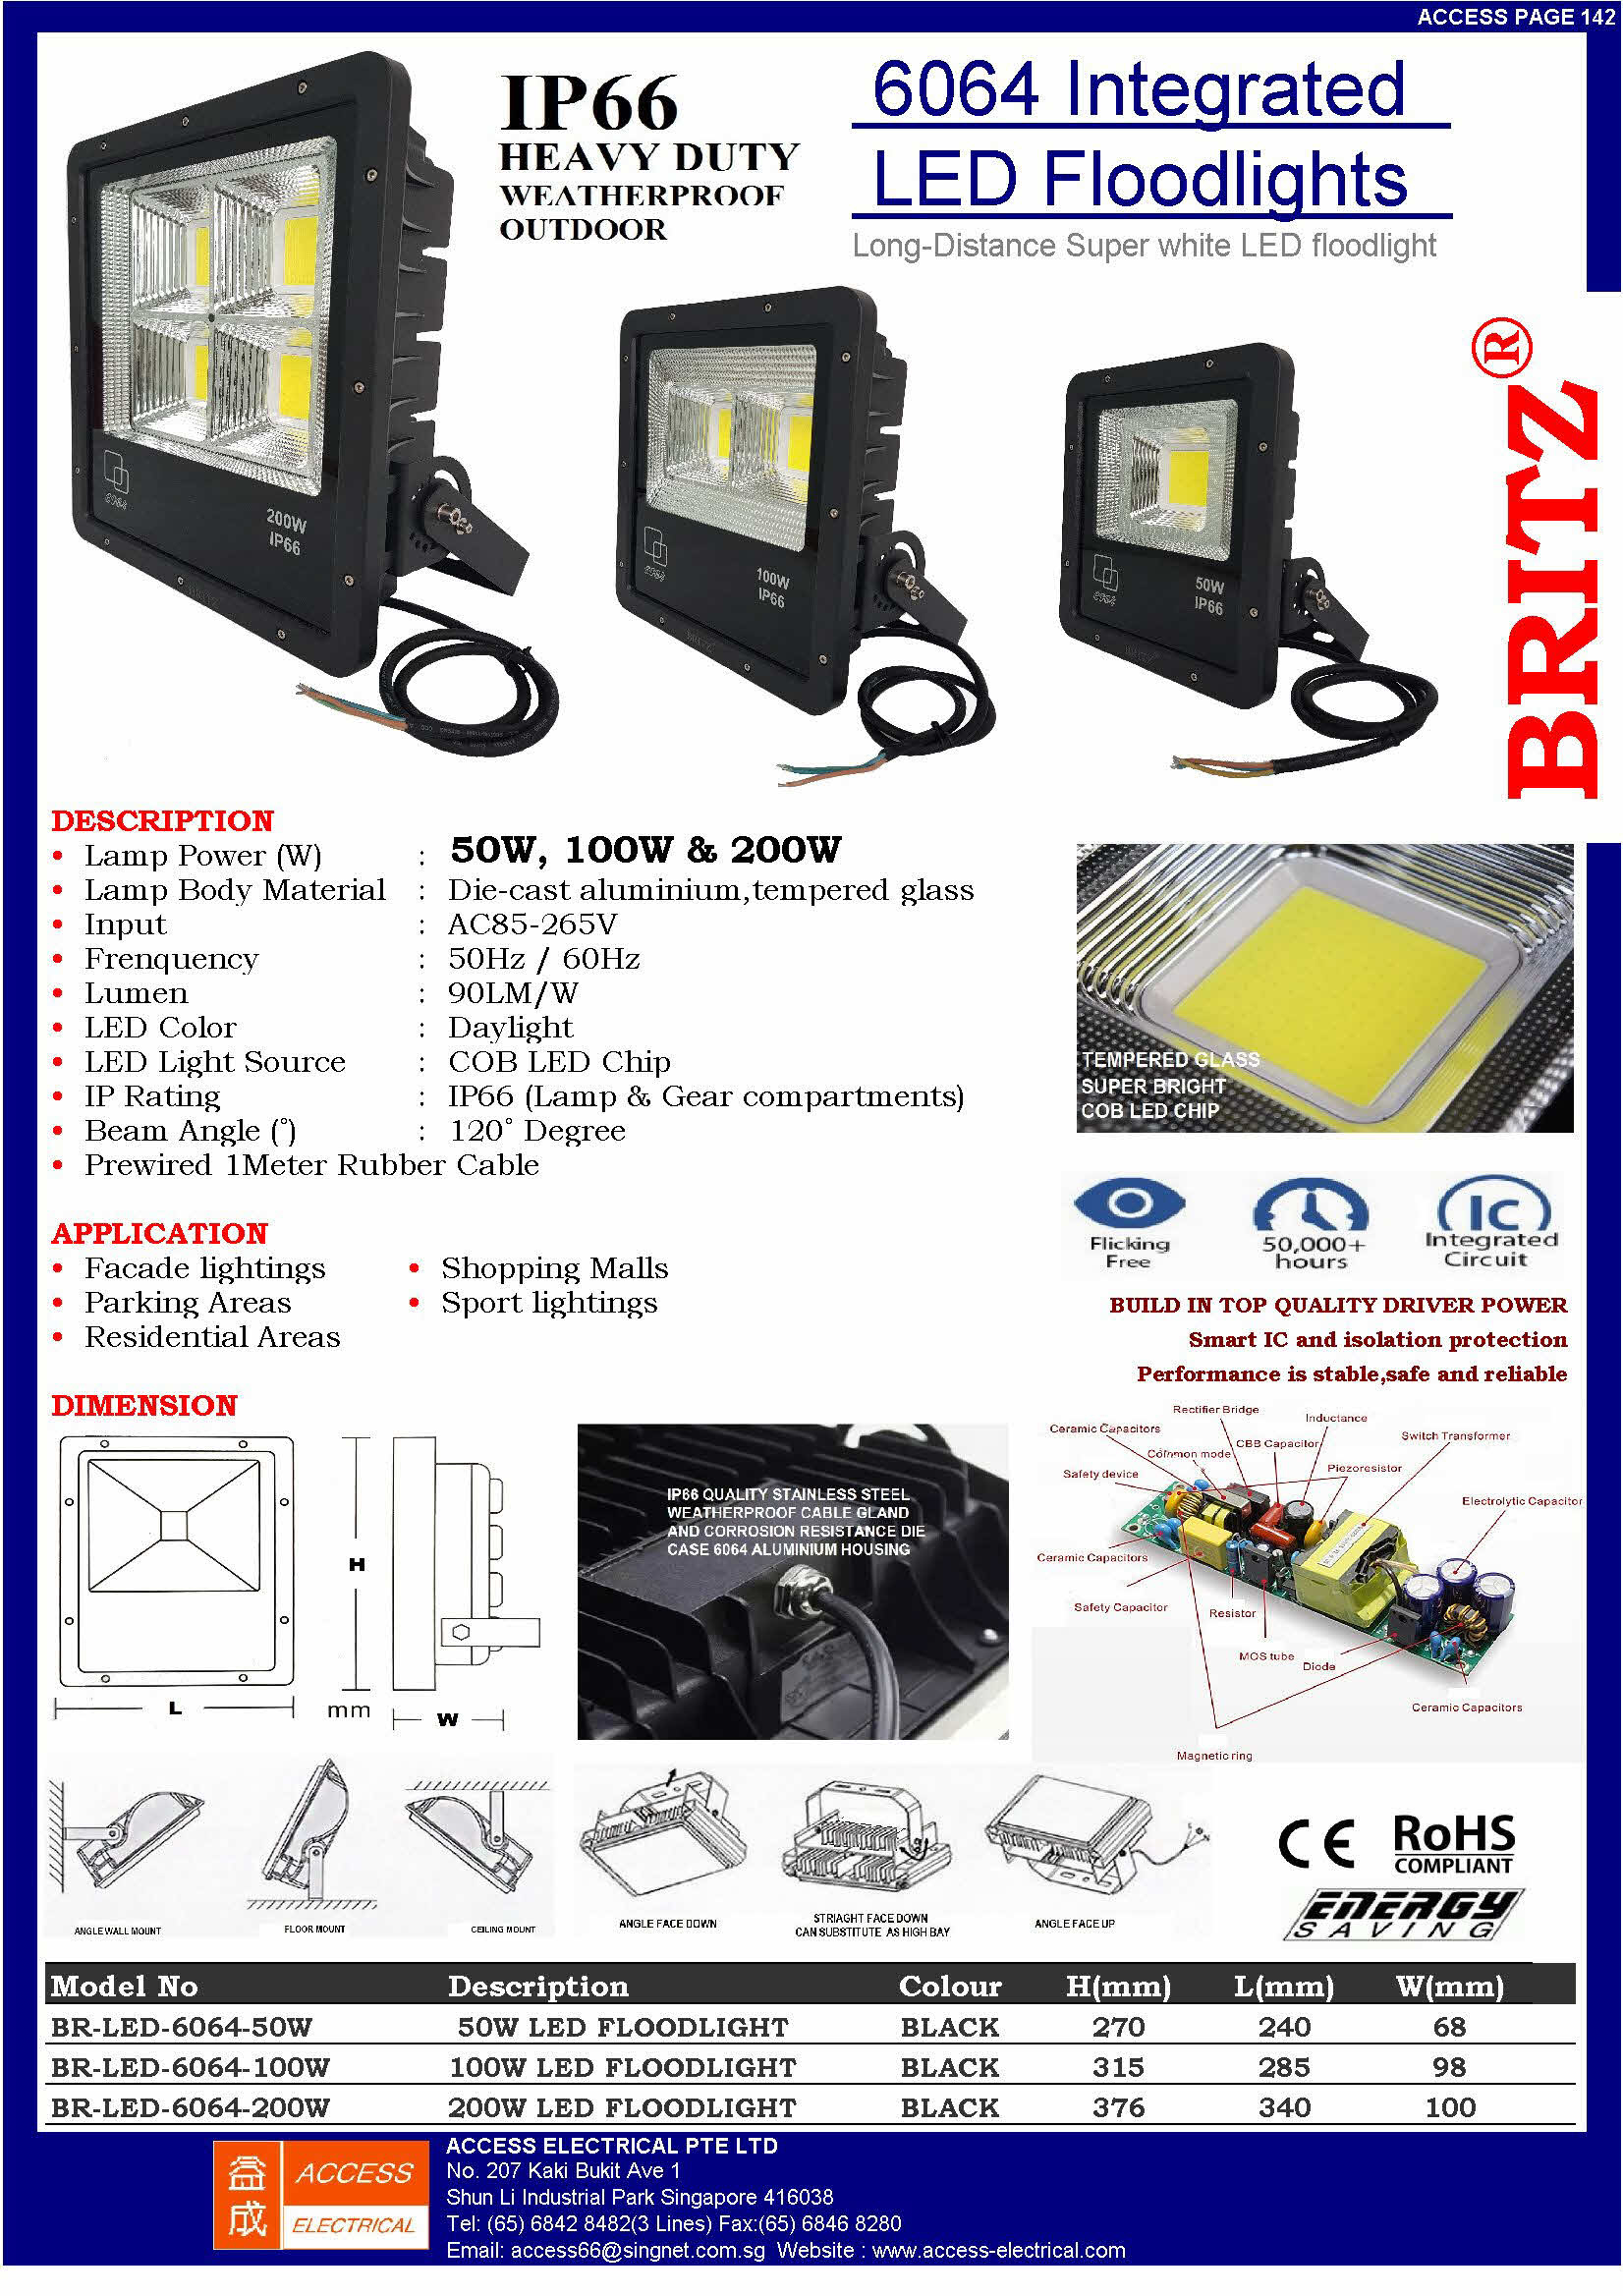 6064 INTEGRATED LED FLOODLIGHT